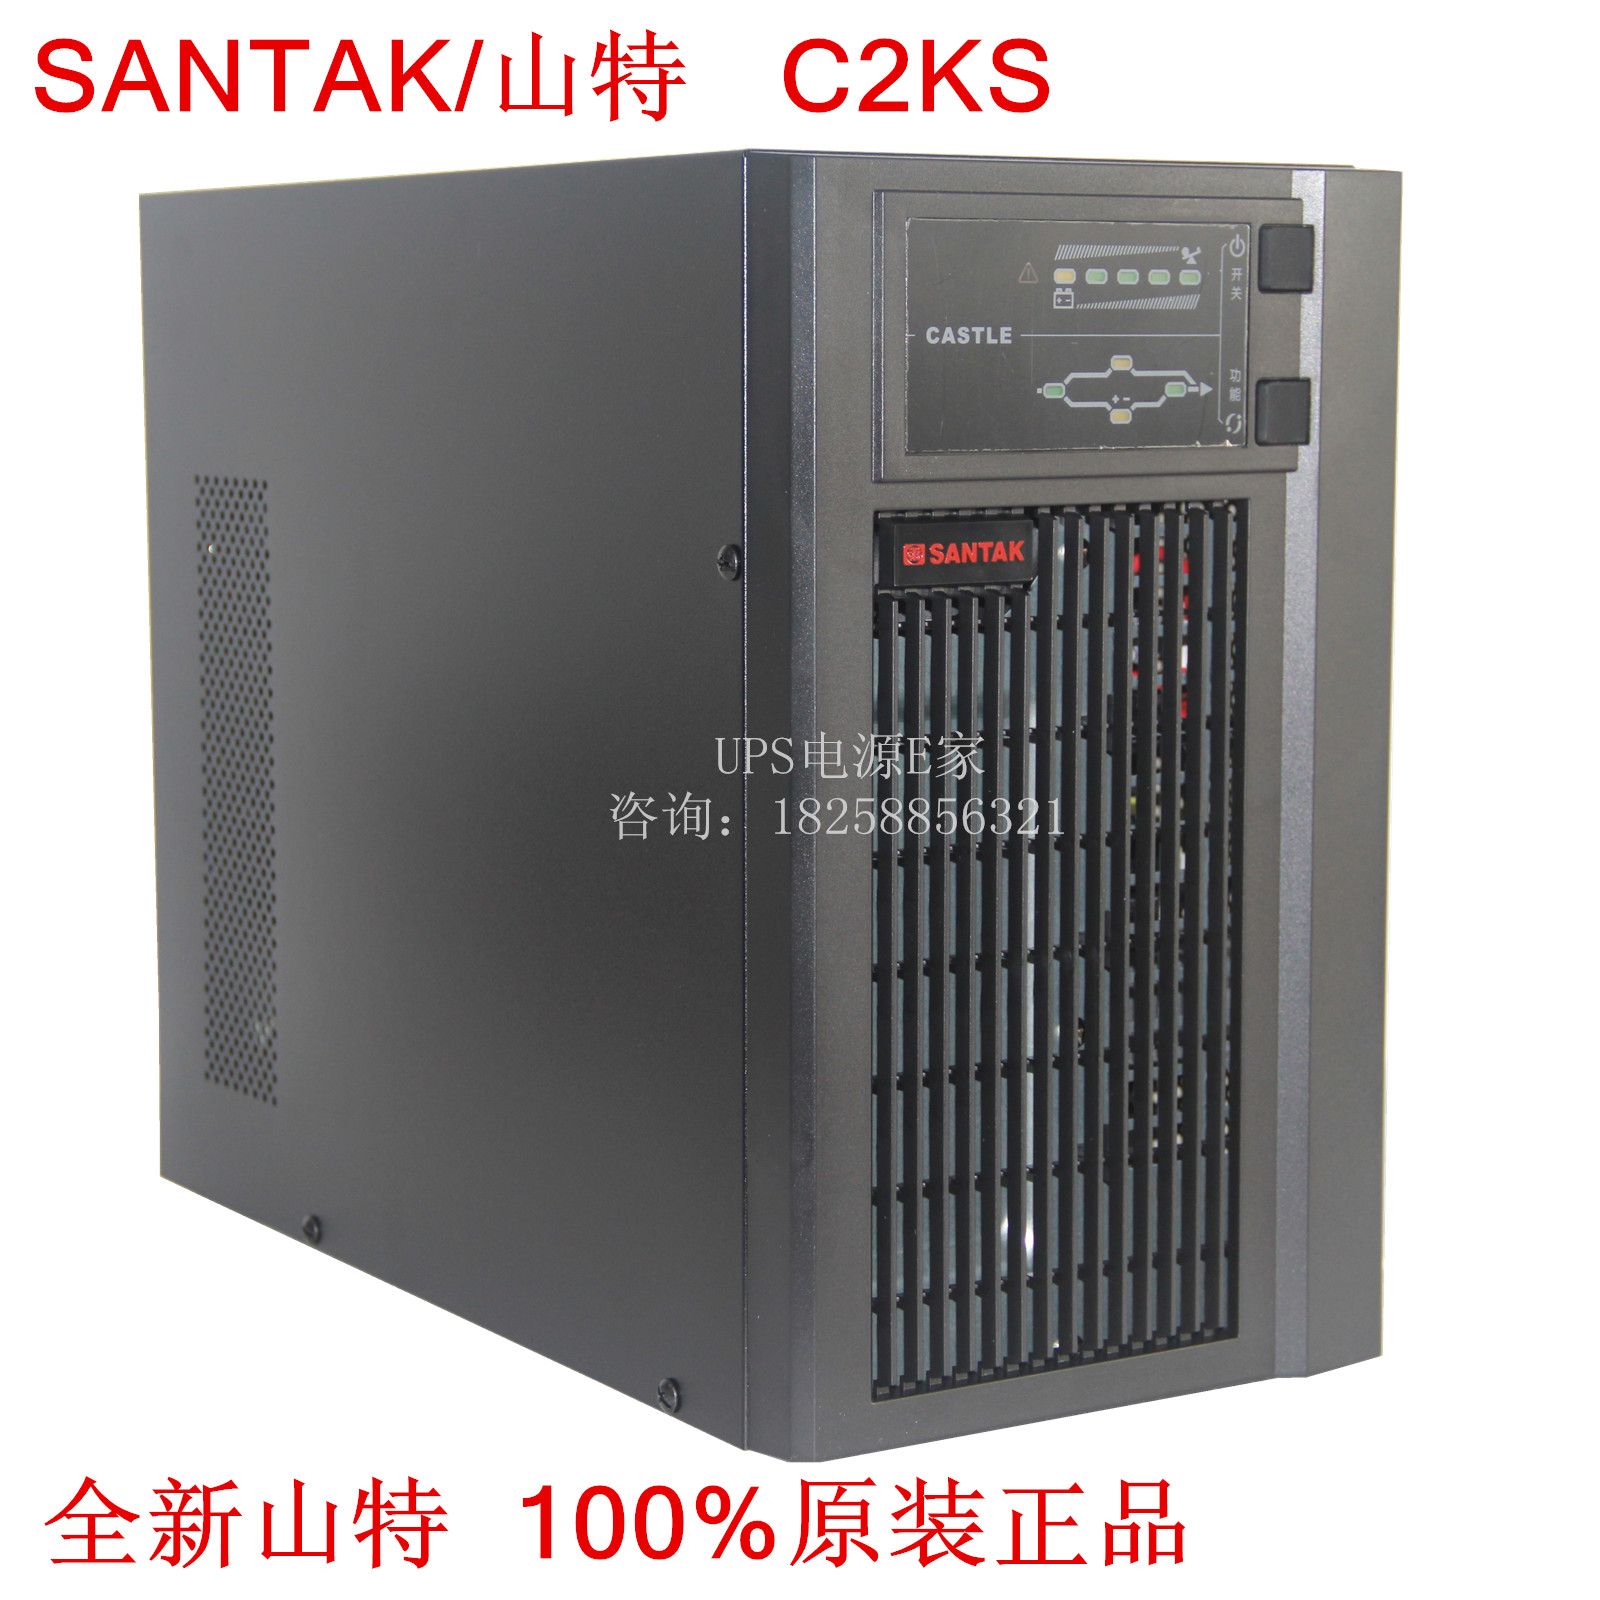 Shenzhen Shante UPS uninterruptible power supply C2KS online 2KVA/1600W CASTLE 2KS (6G) regulator